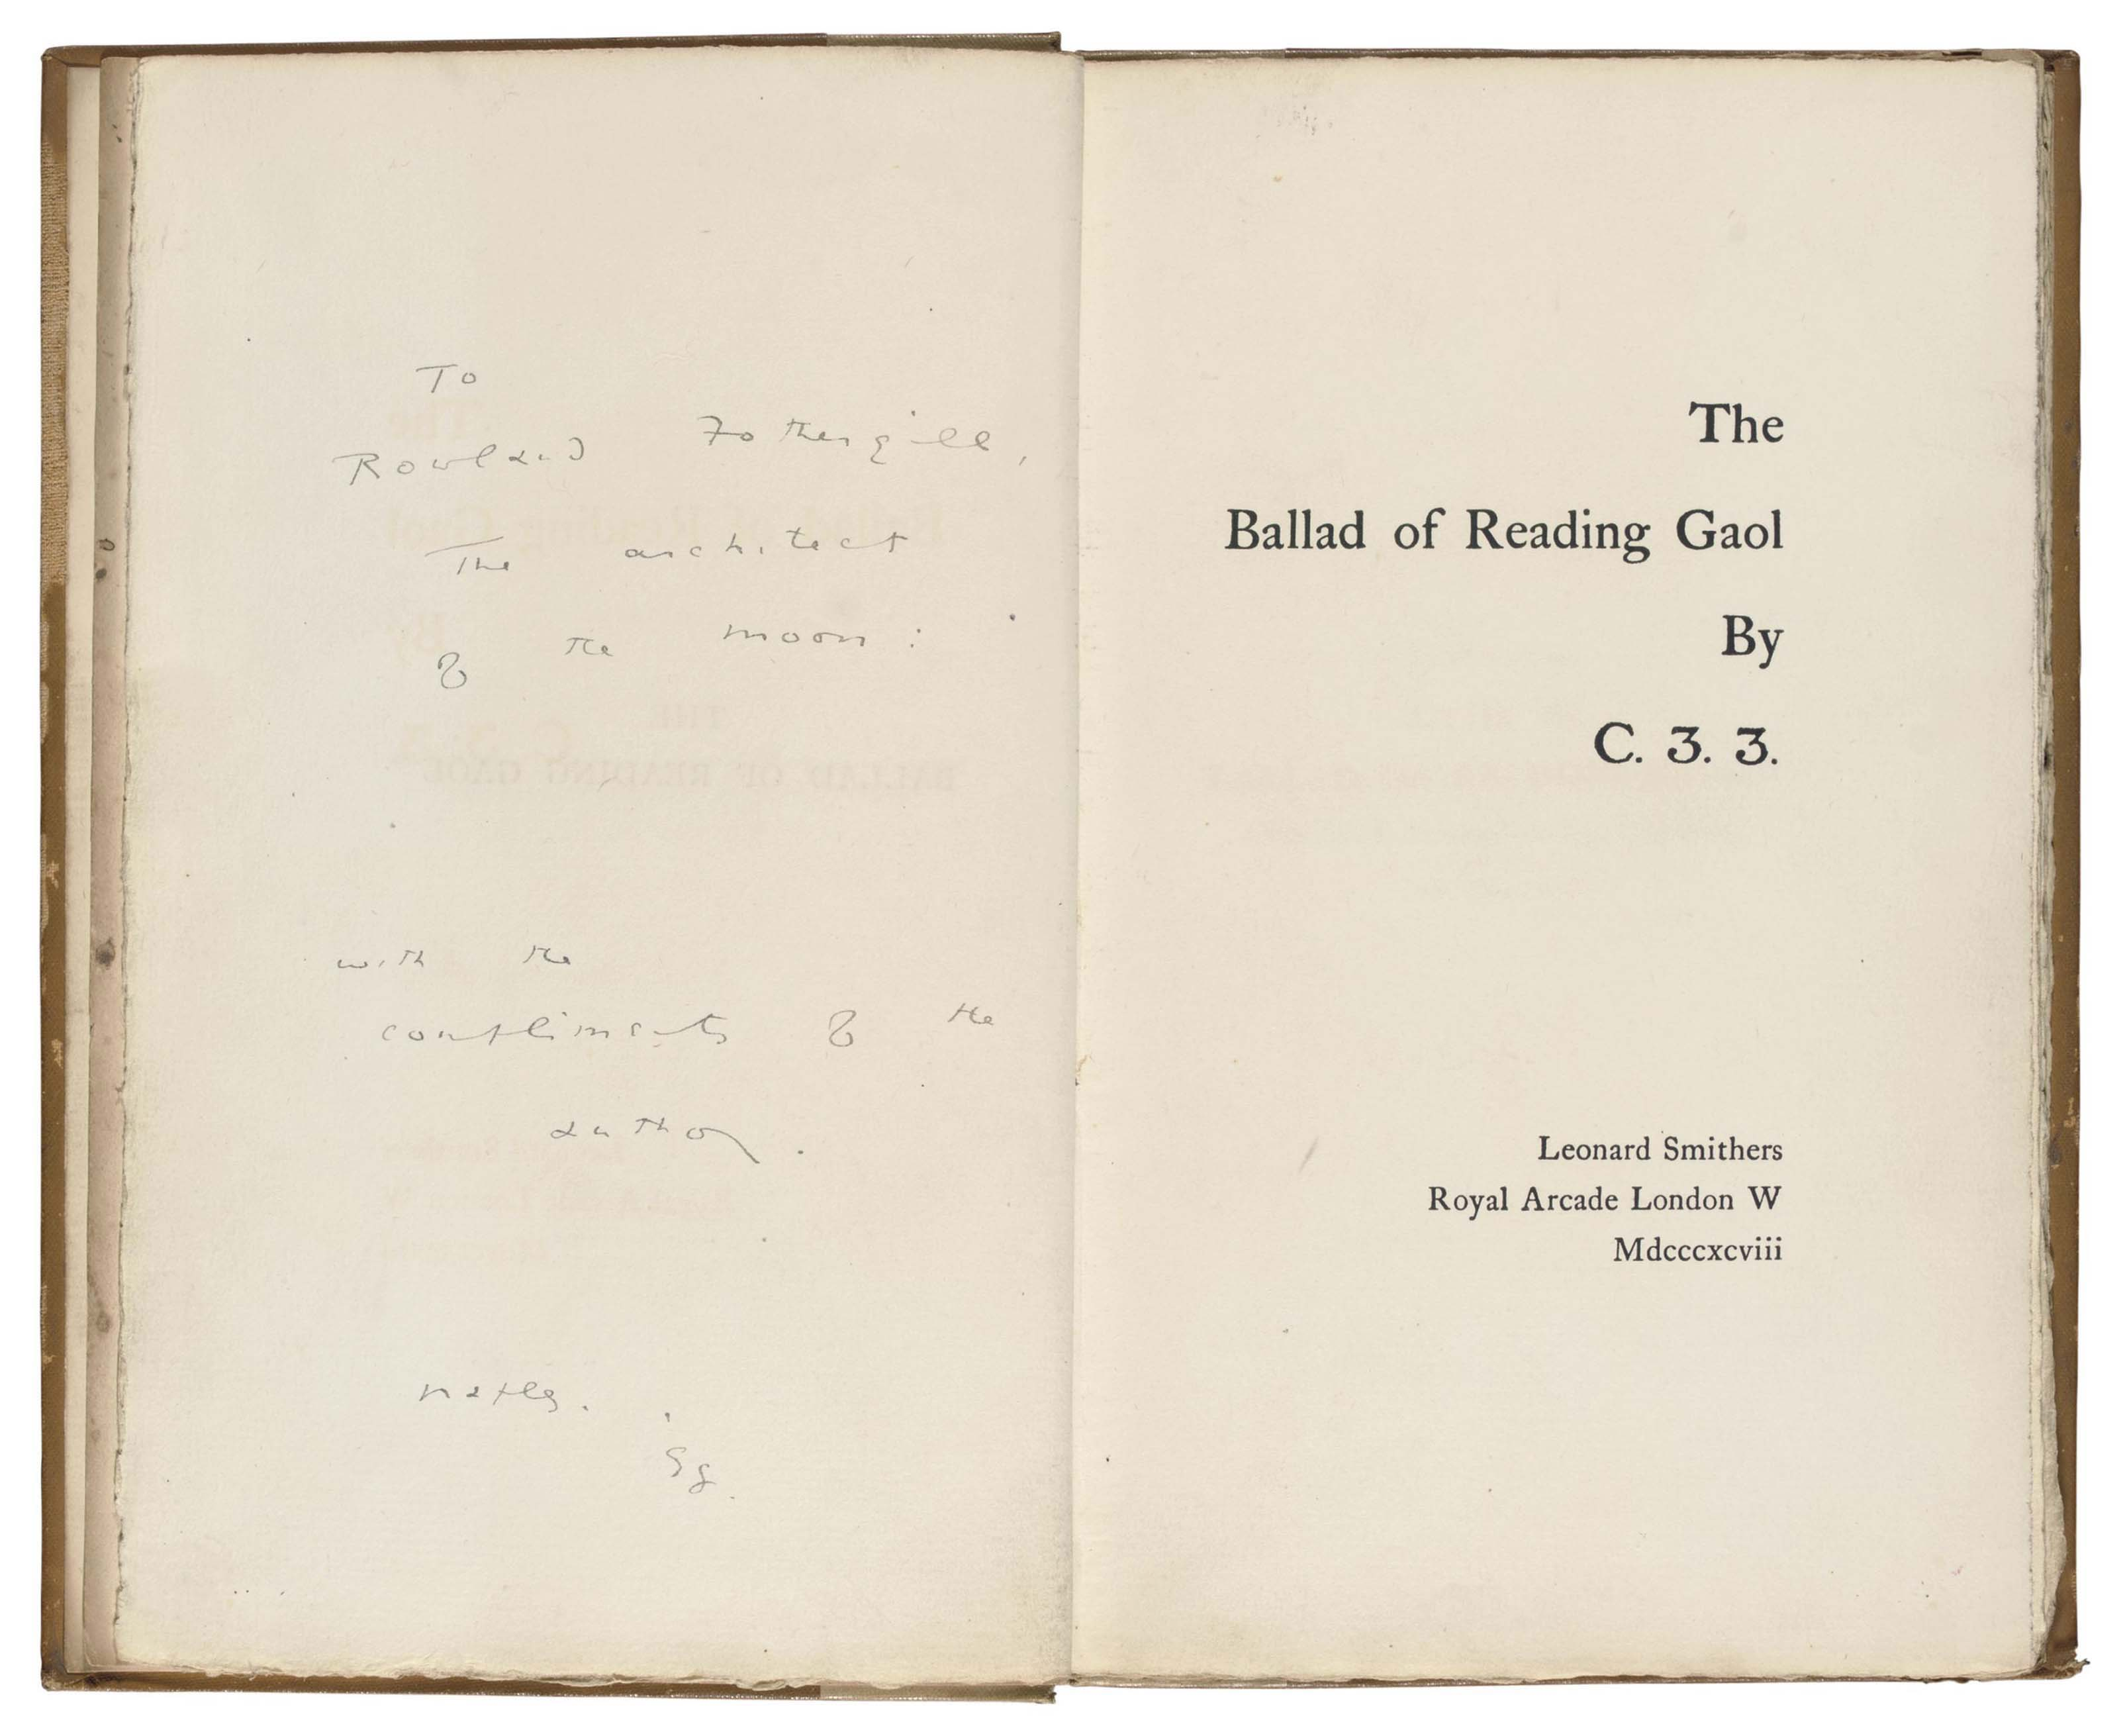 [WILDE, Oscar Fingal O'Flahertie Wills (1854-1900).] The Ballad of Reading Gaol by C.3.3. London: [The Chiswick Press for] Leonard Smithers, 1898.